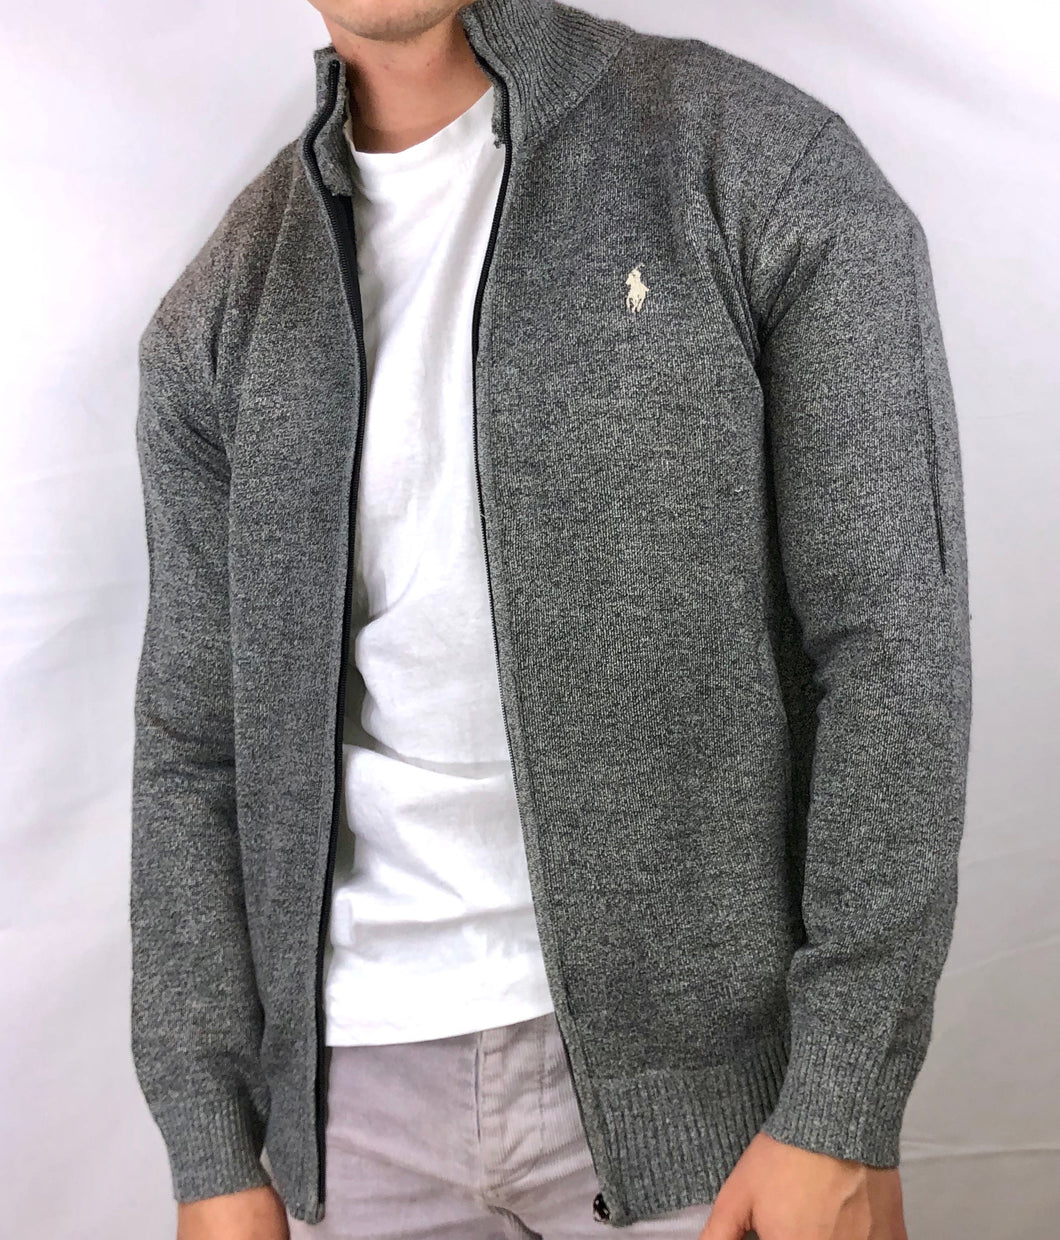 Ralph Lauren Zip Up - M